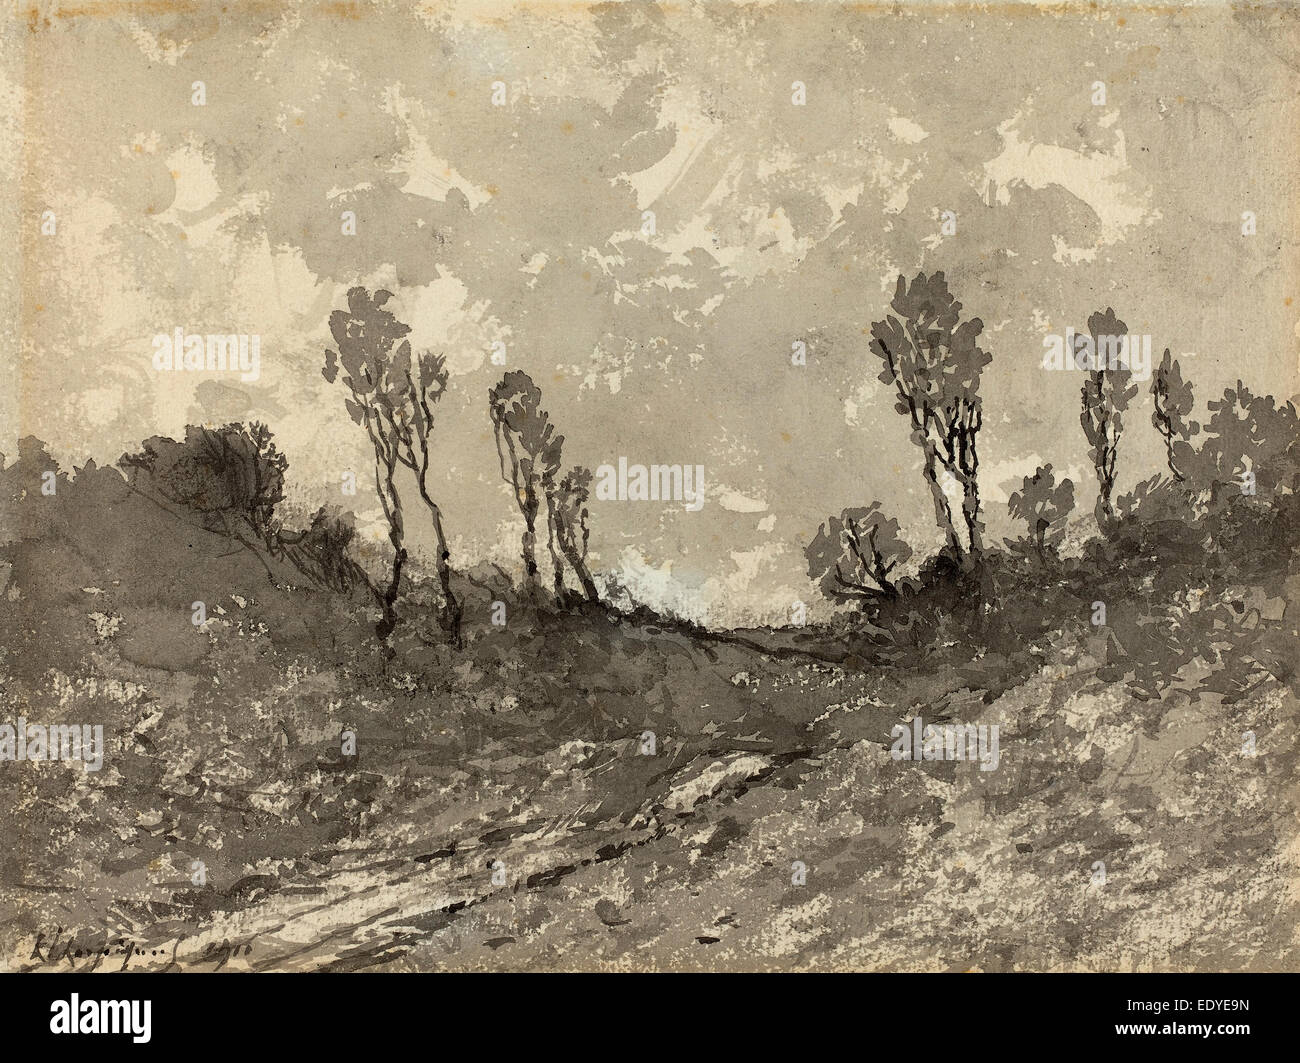 Henri-Joseph Harpignies, Road at Hérisson, French, 1819 - 1916, 1911, brush with black and gray inks over charcoal - Stock Image